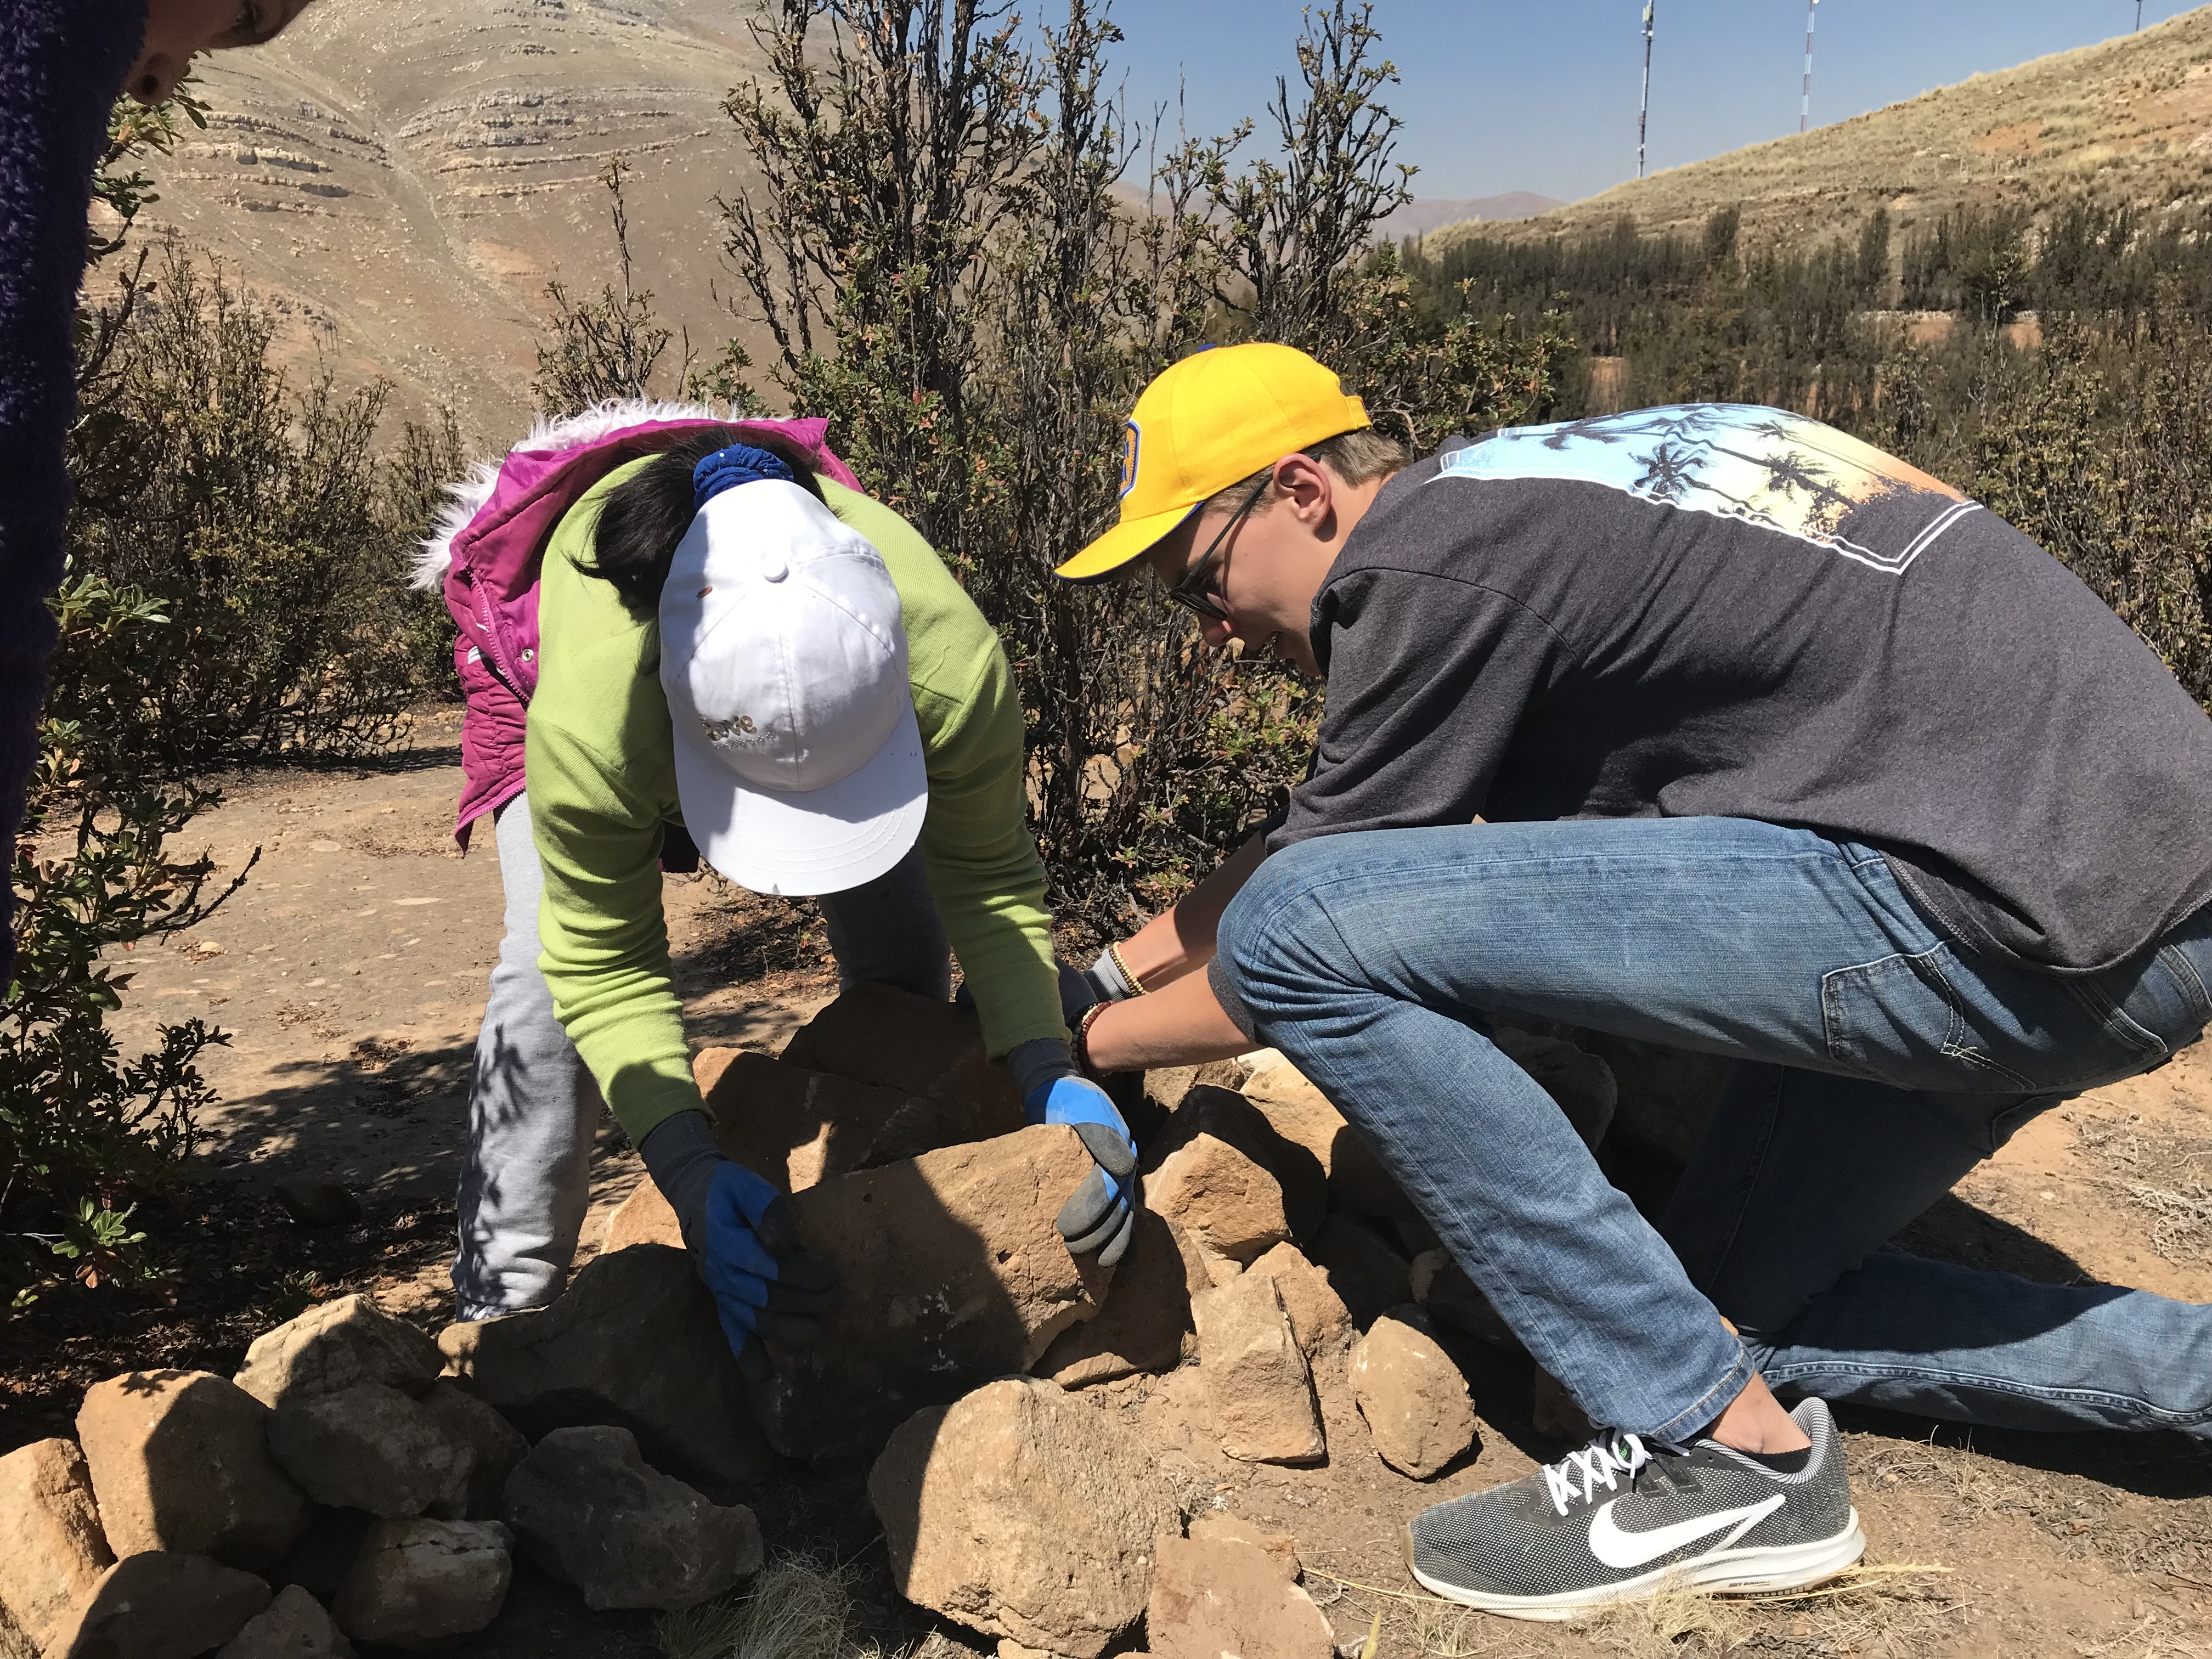 James Berthoud, youth member of the Covenant Presbyterian Church, works alongside youth from La Oroya in helping build terrace walls in the already forested lands of Villa El Sol.